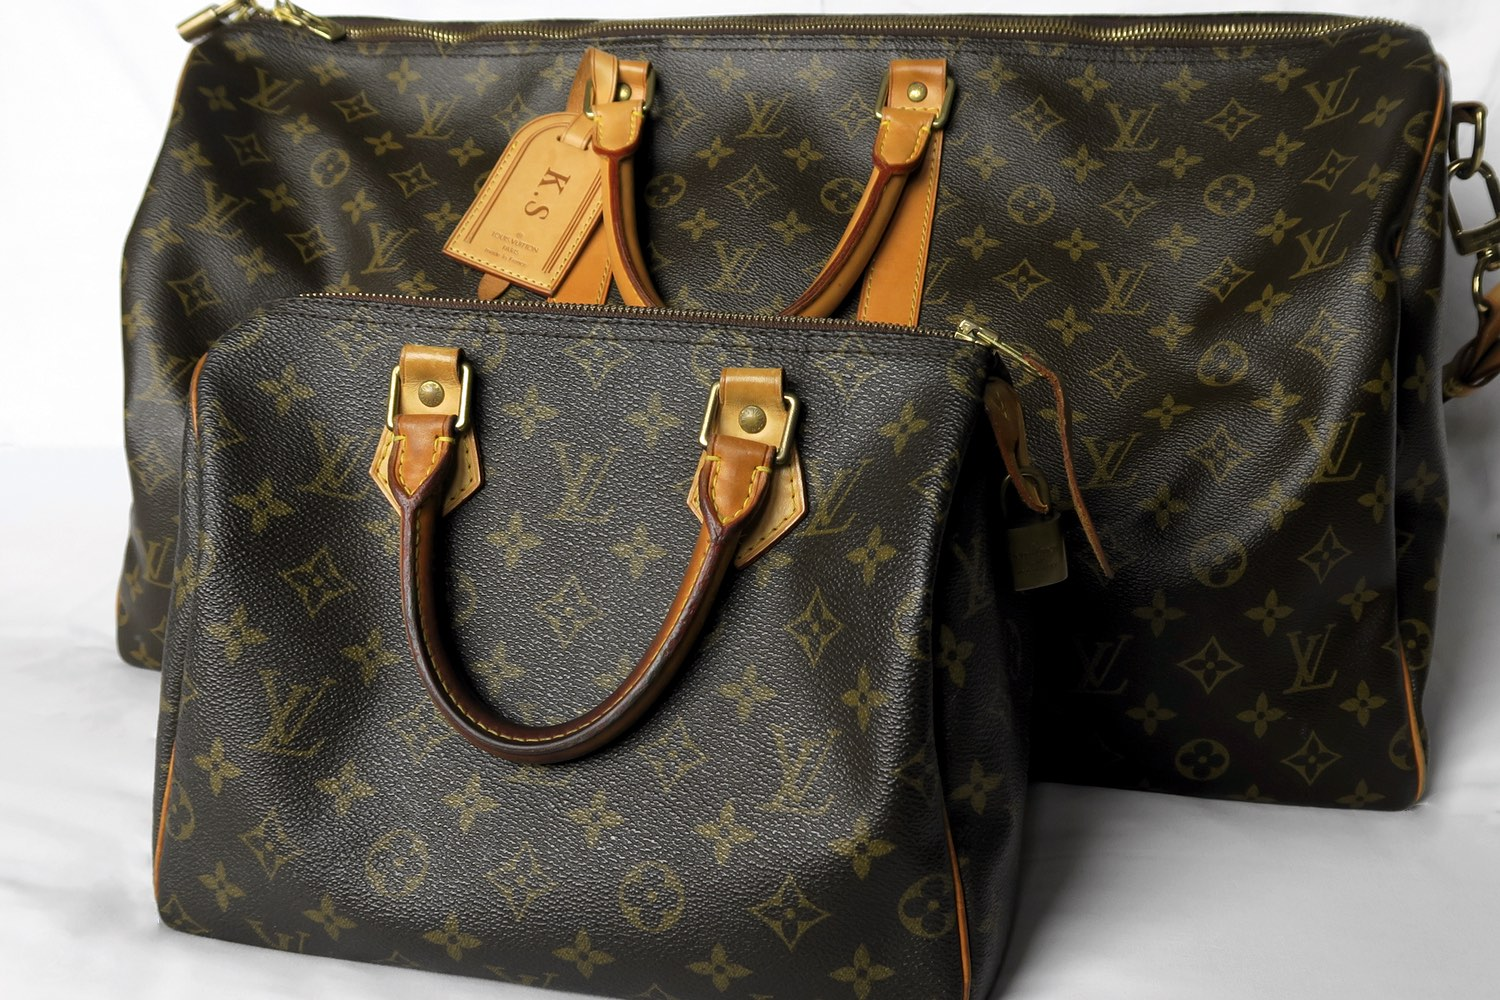 My Louis Vuitton Keepall 55 and Speedy 25 Are The Perfect Twins